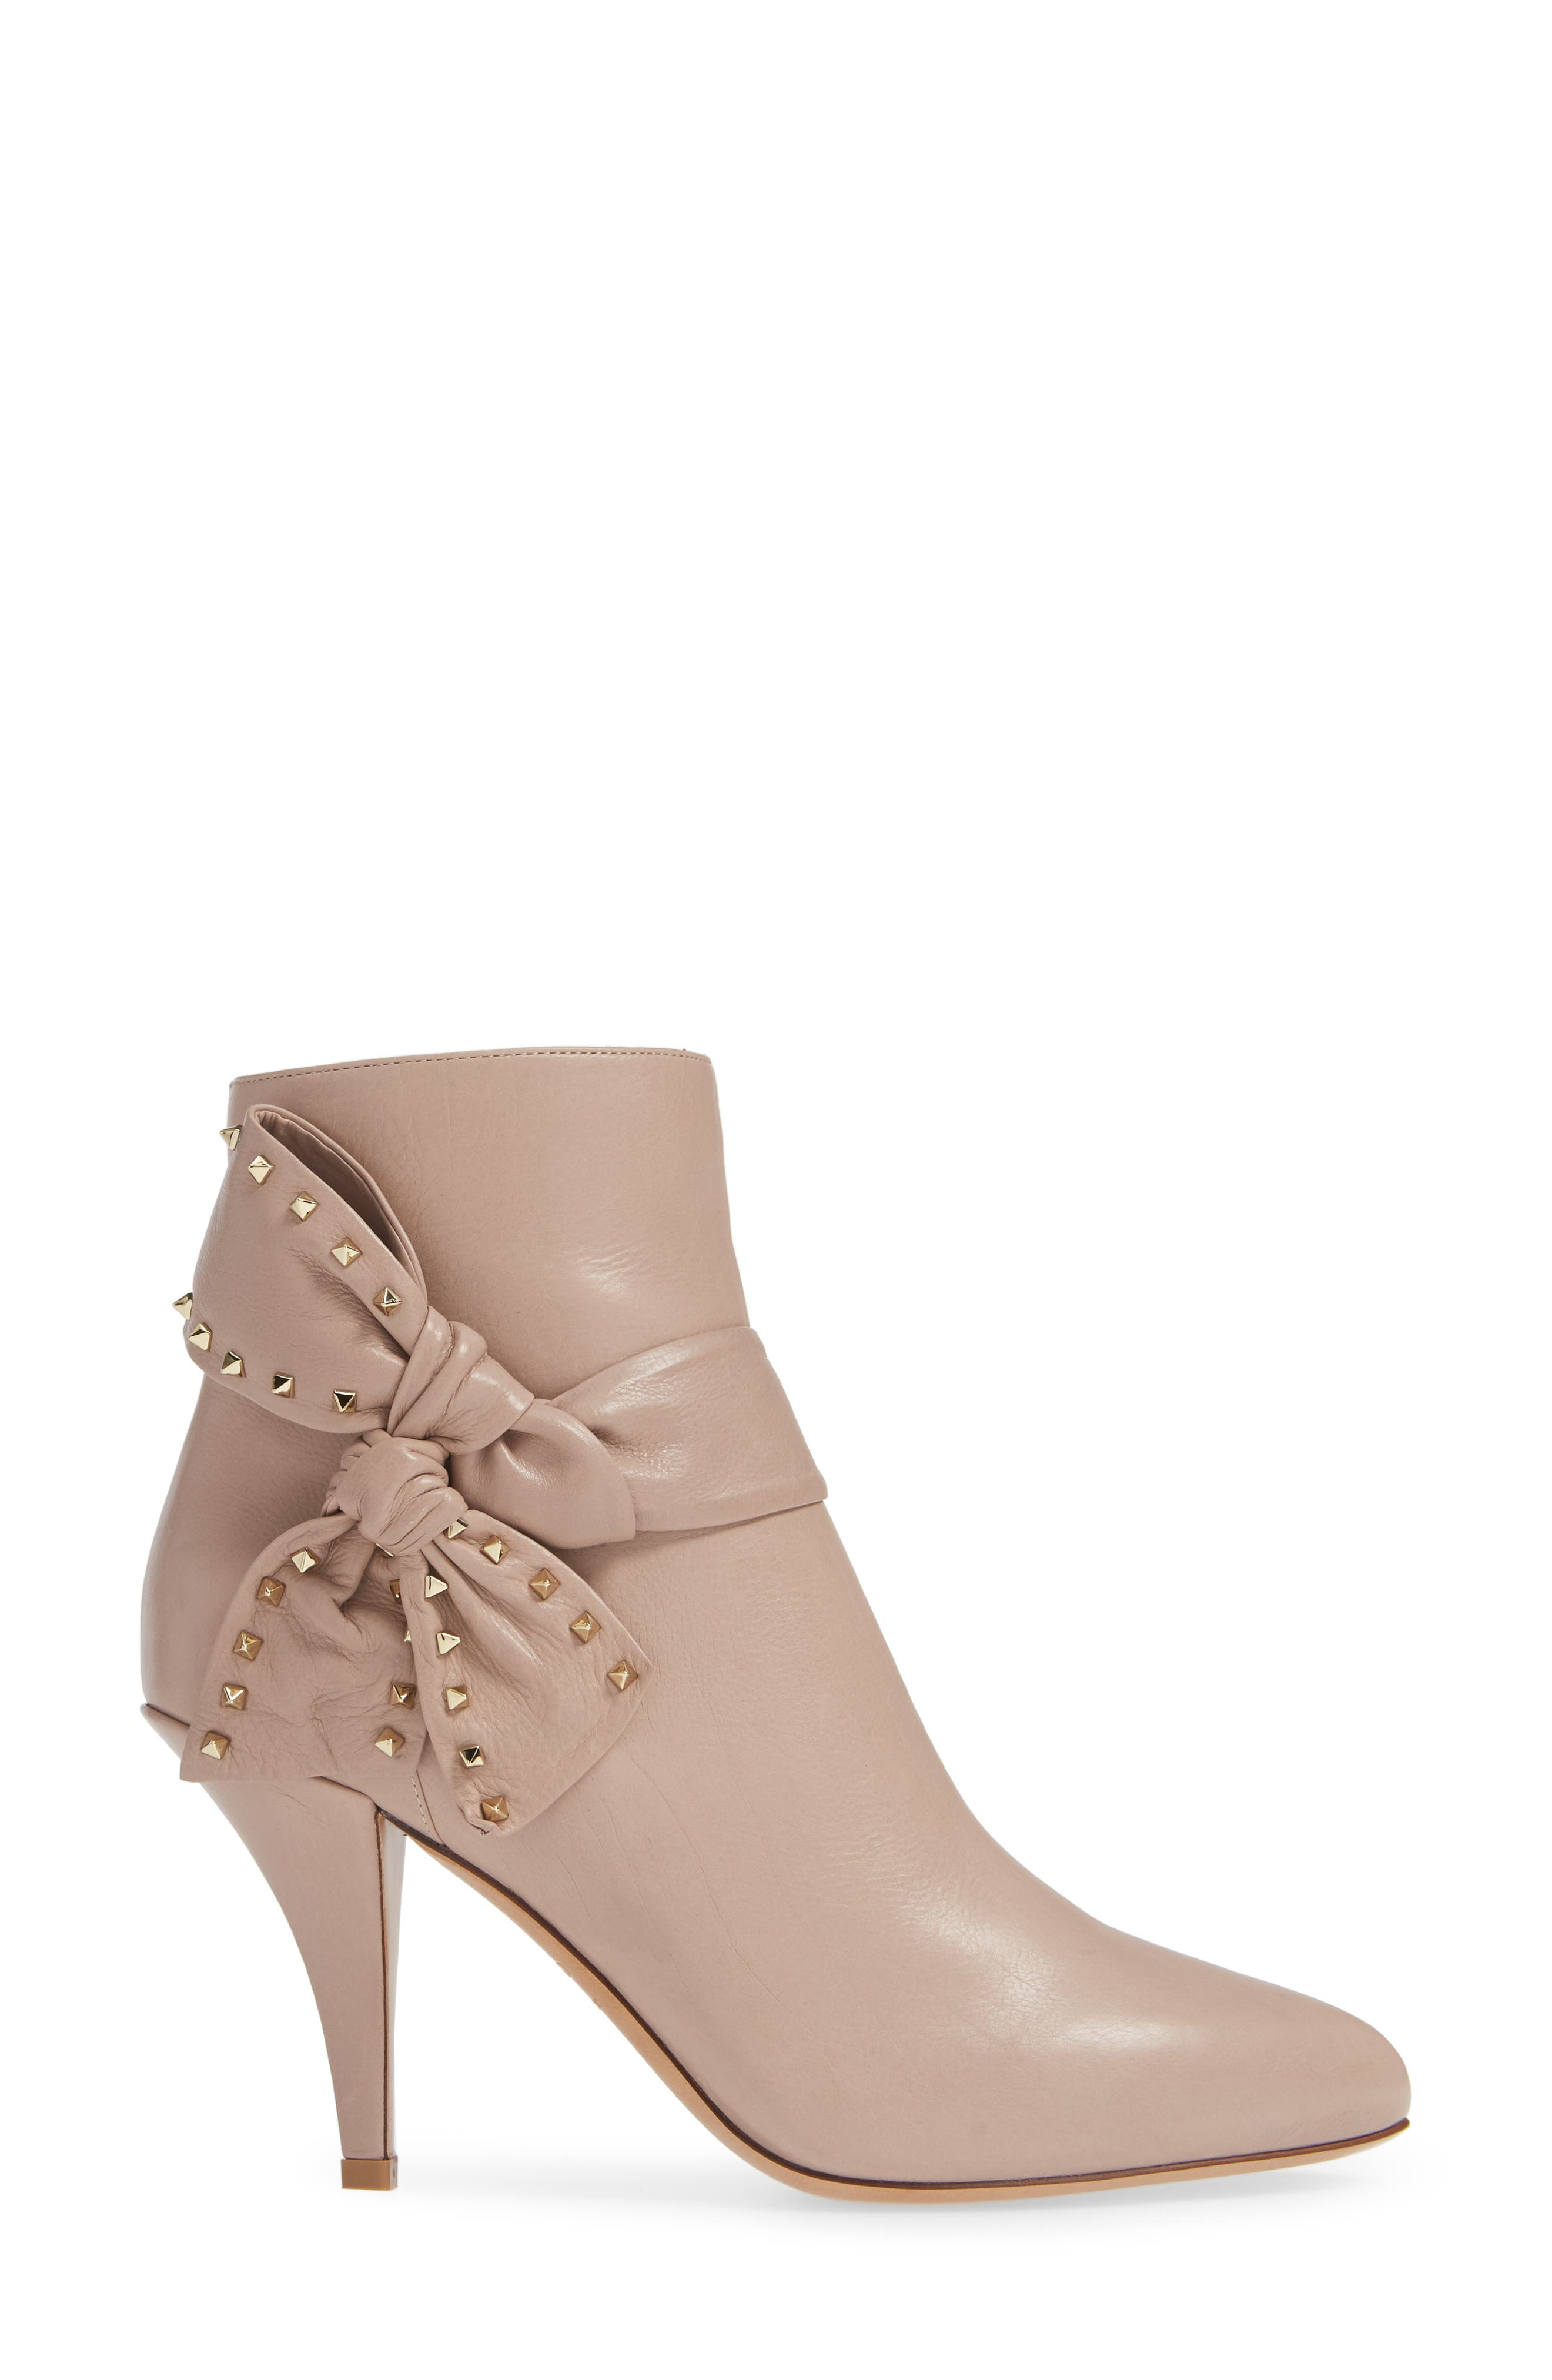 Studded Bow Ankle Bootie,                             Alternate thumbnail 3, color,                             250